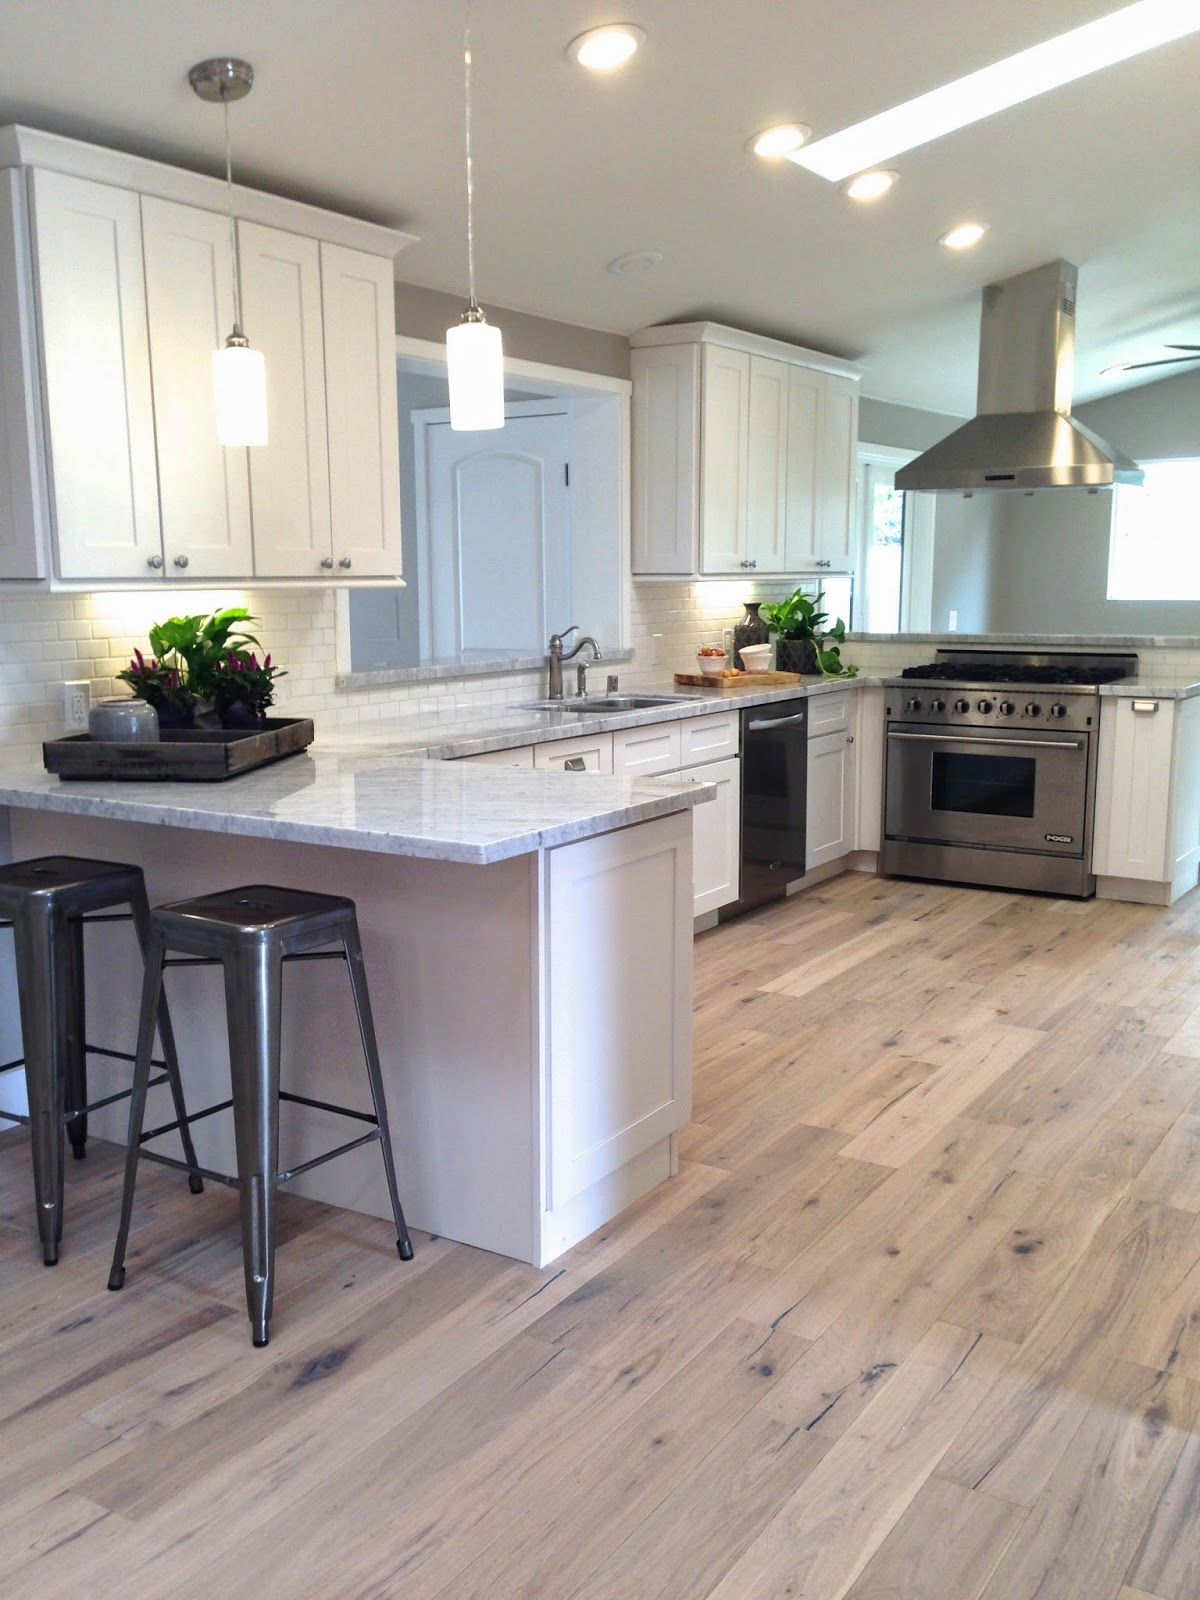 wood flooring for kitchen small cabinets best of 2014 rossmoor house finished in 2019 underfoot i like the stain color floors